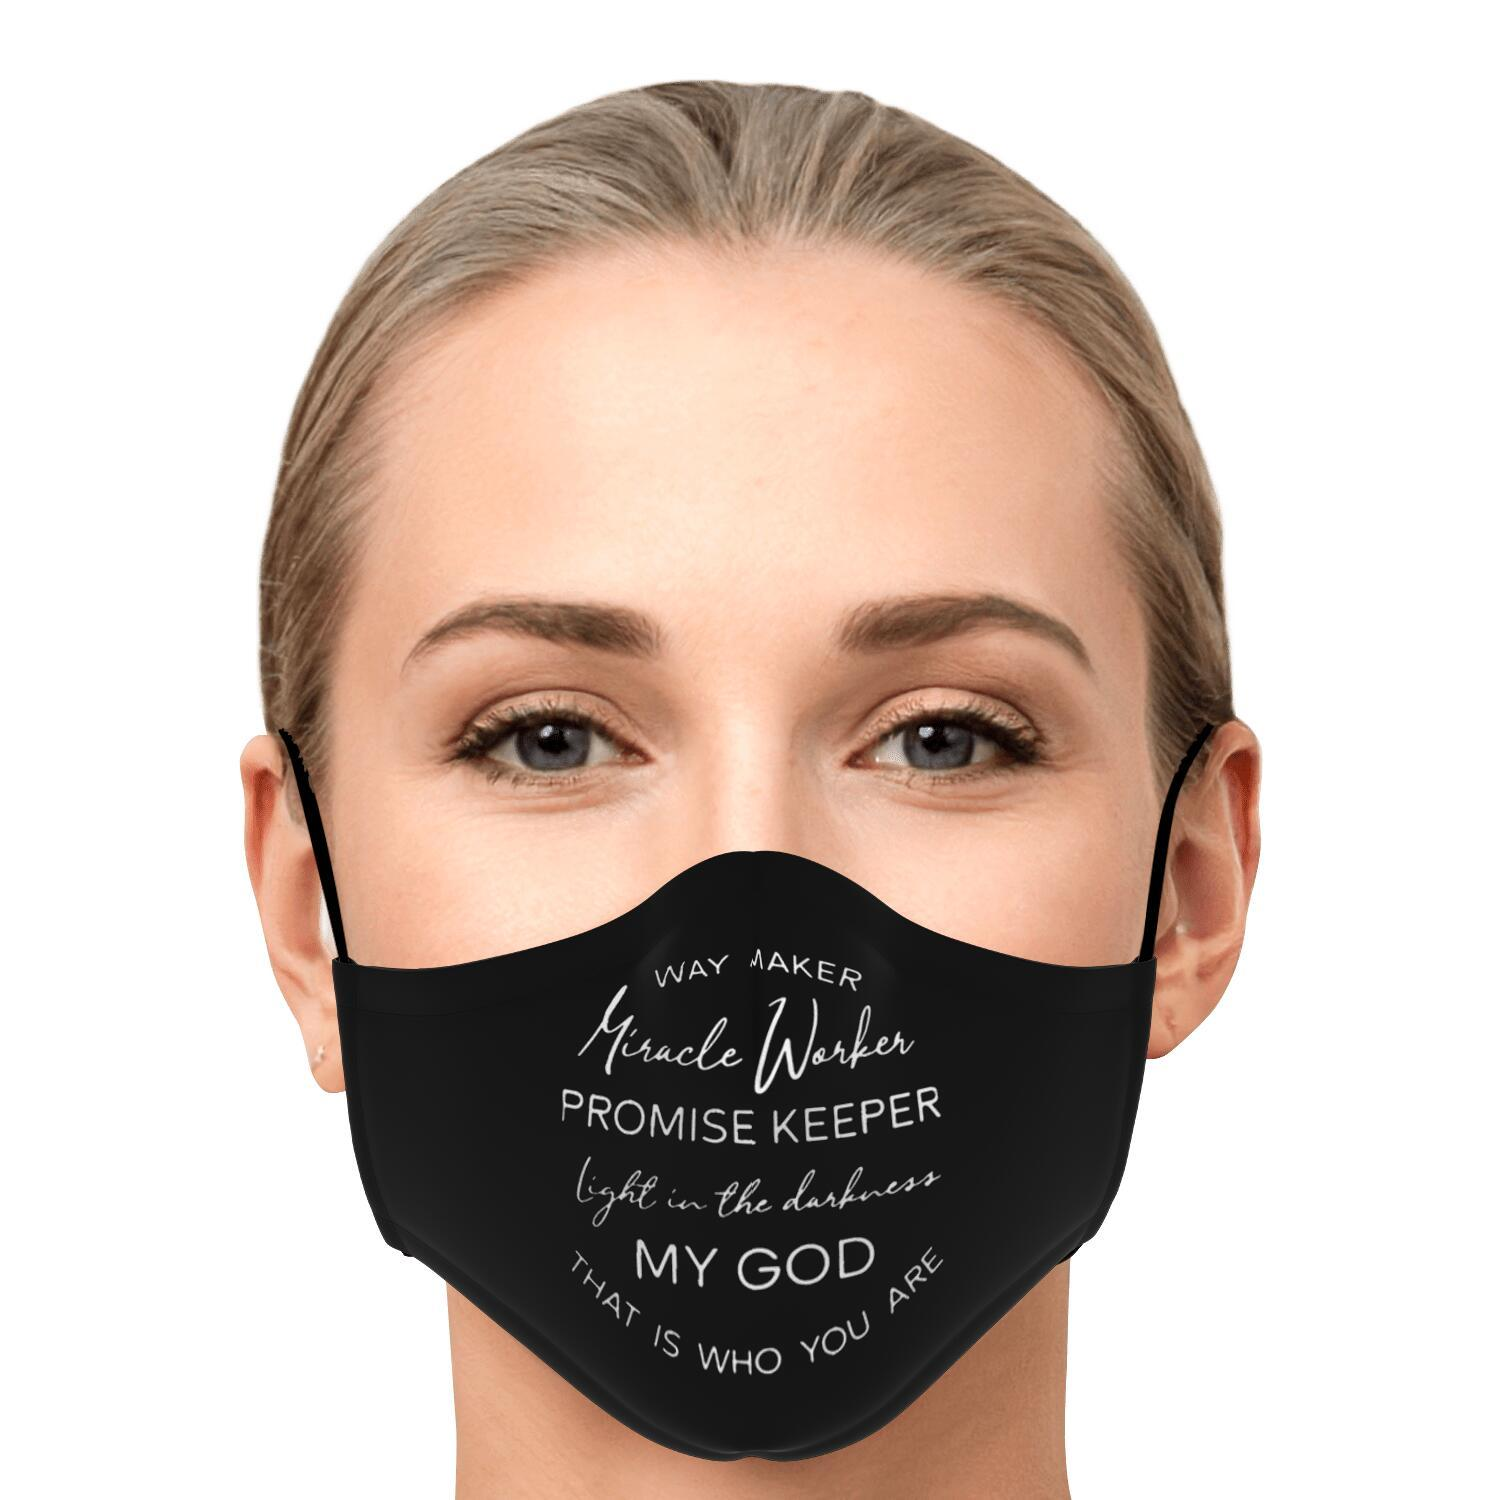 Way Maker Miracle Workers Promise Keeper Face Mask 1